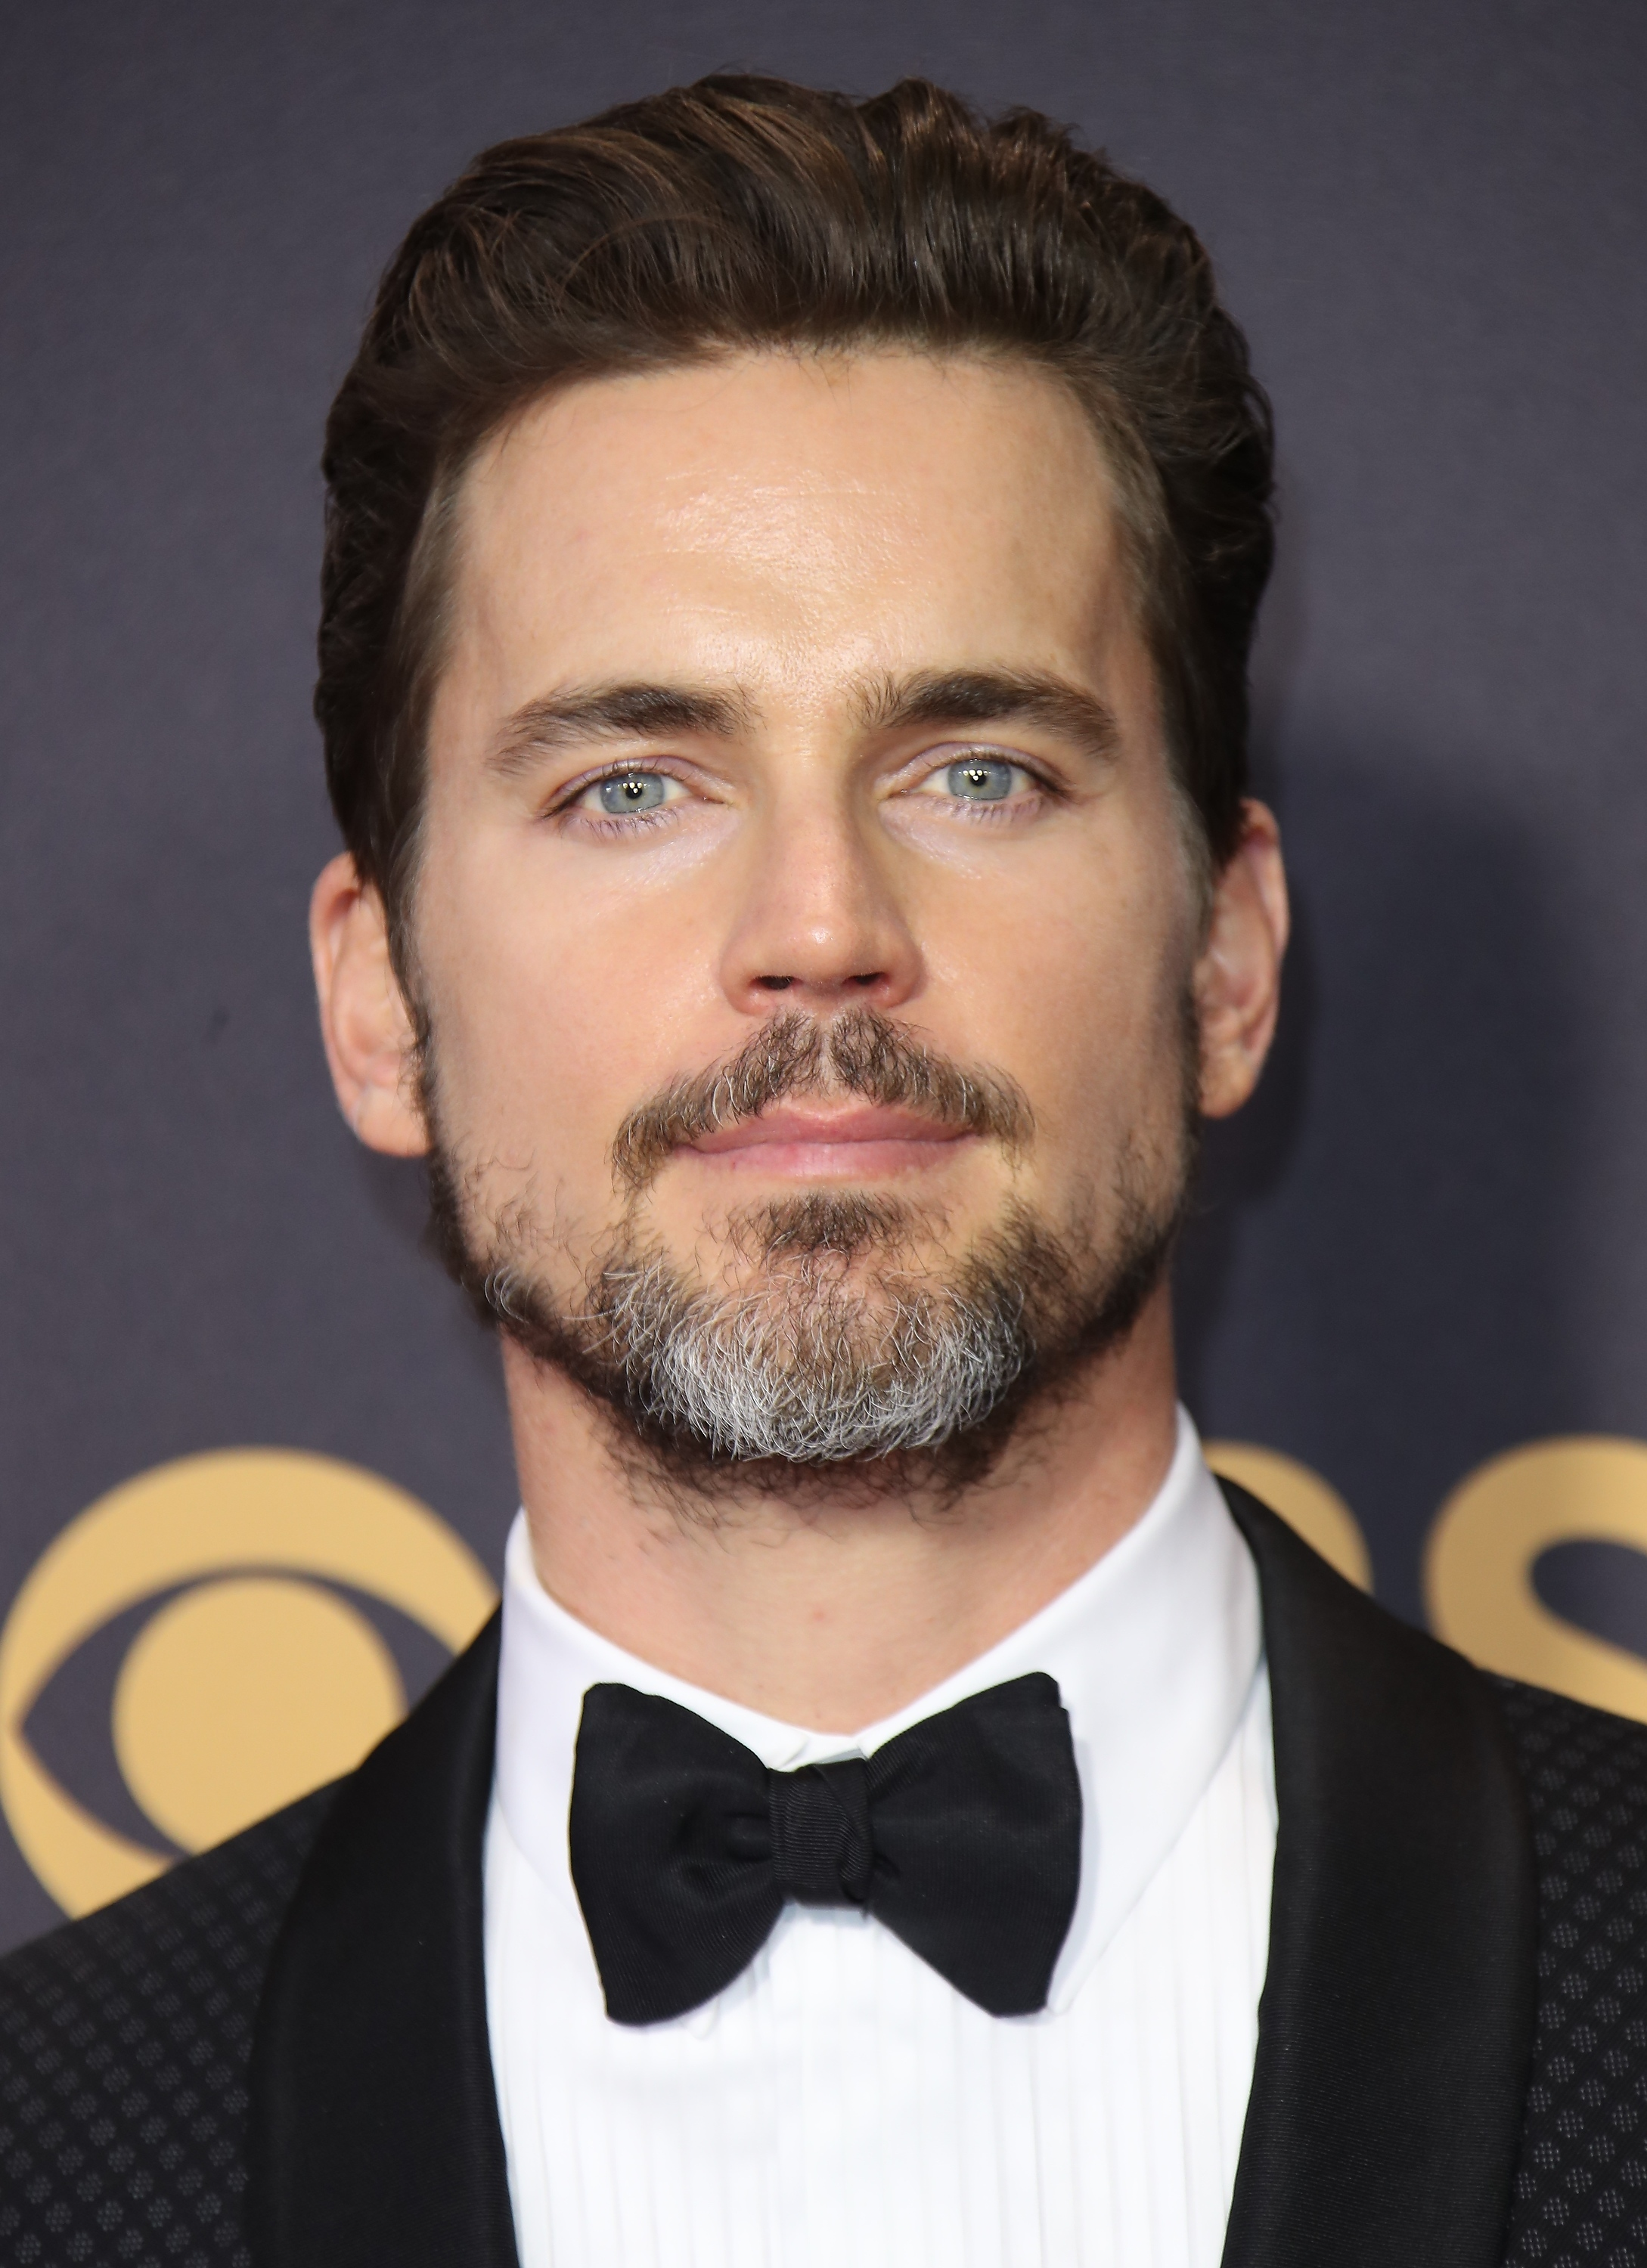 Matt Bomer - What you need to know | Gallery | Wonderwall.com